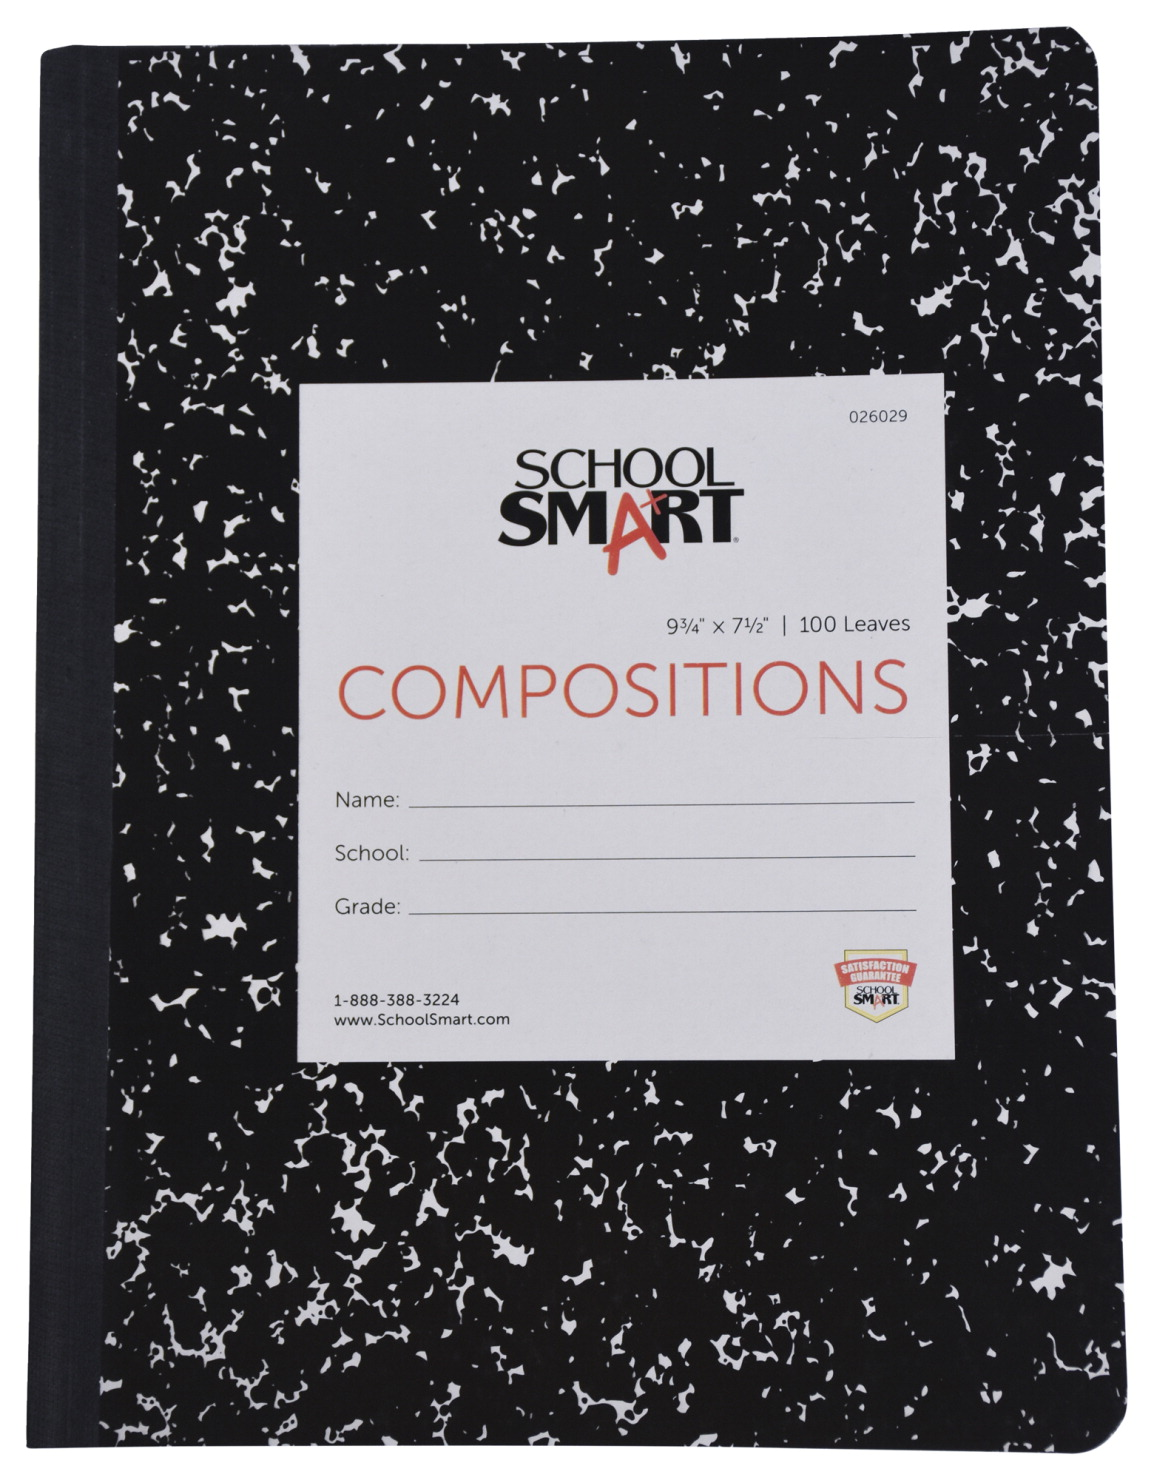 School Smart Hard Cover Ruled Composition Book, 9-3/4 x 7-1/2 Inches, 100 Sheets